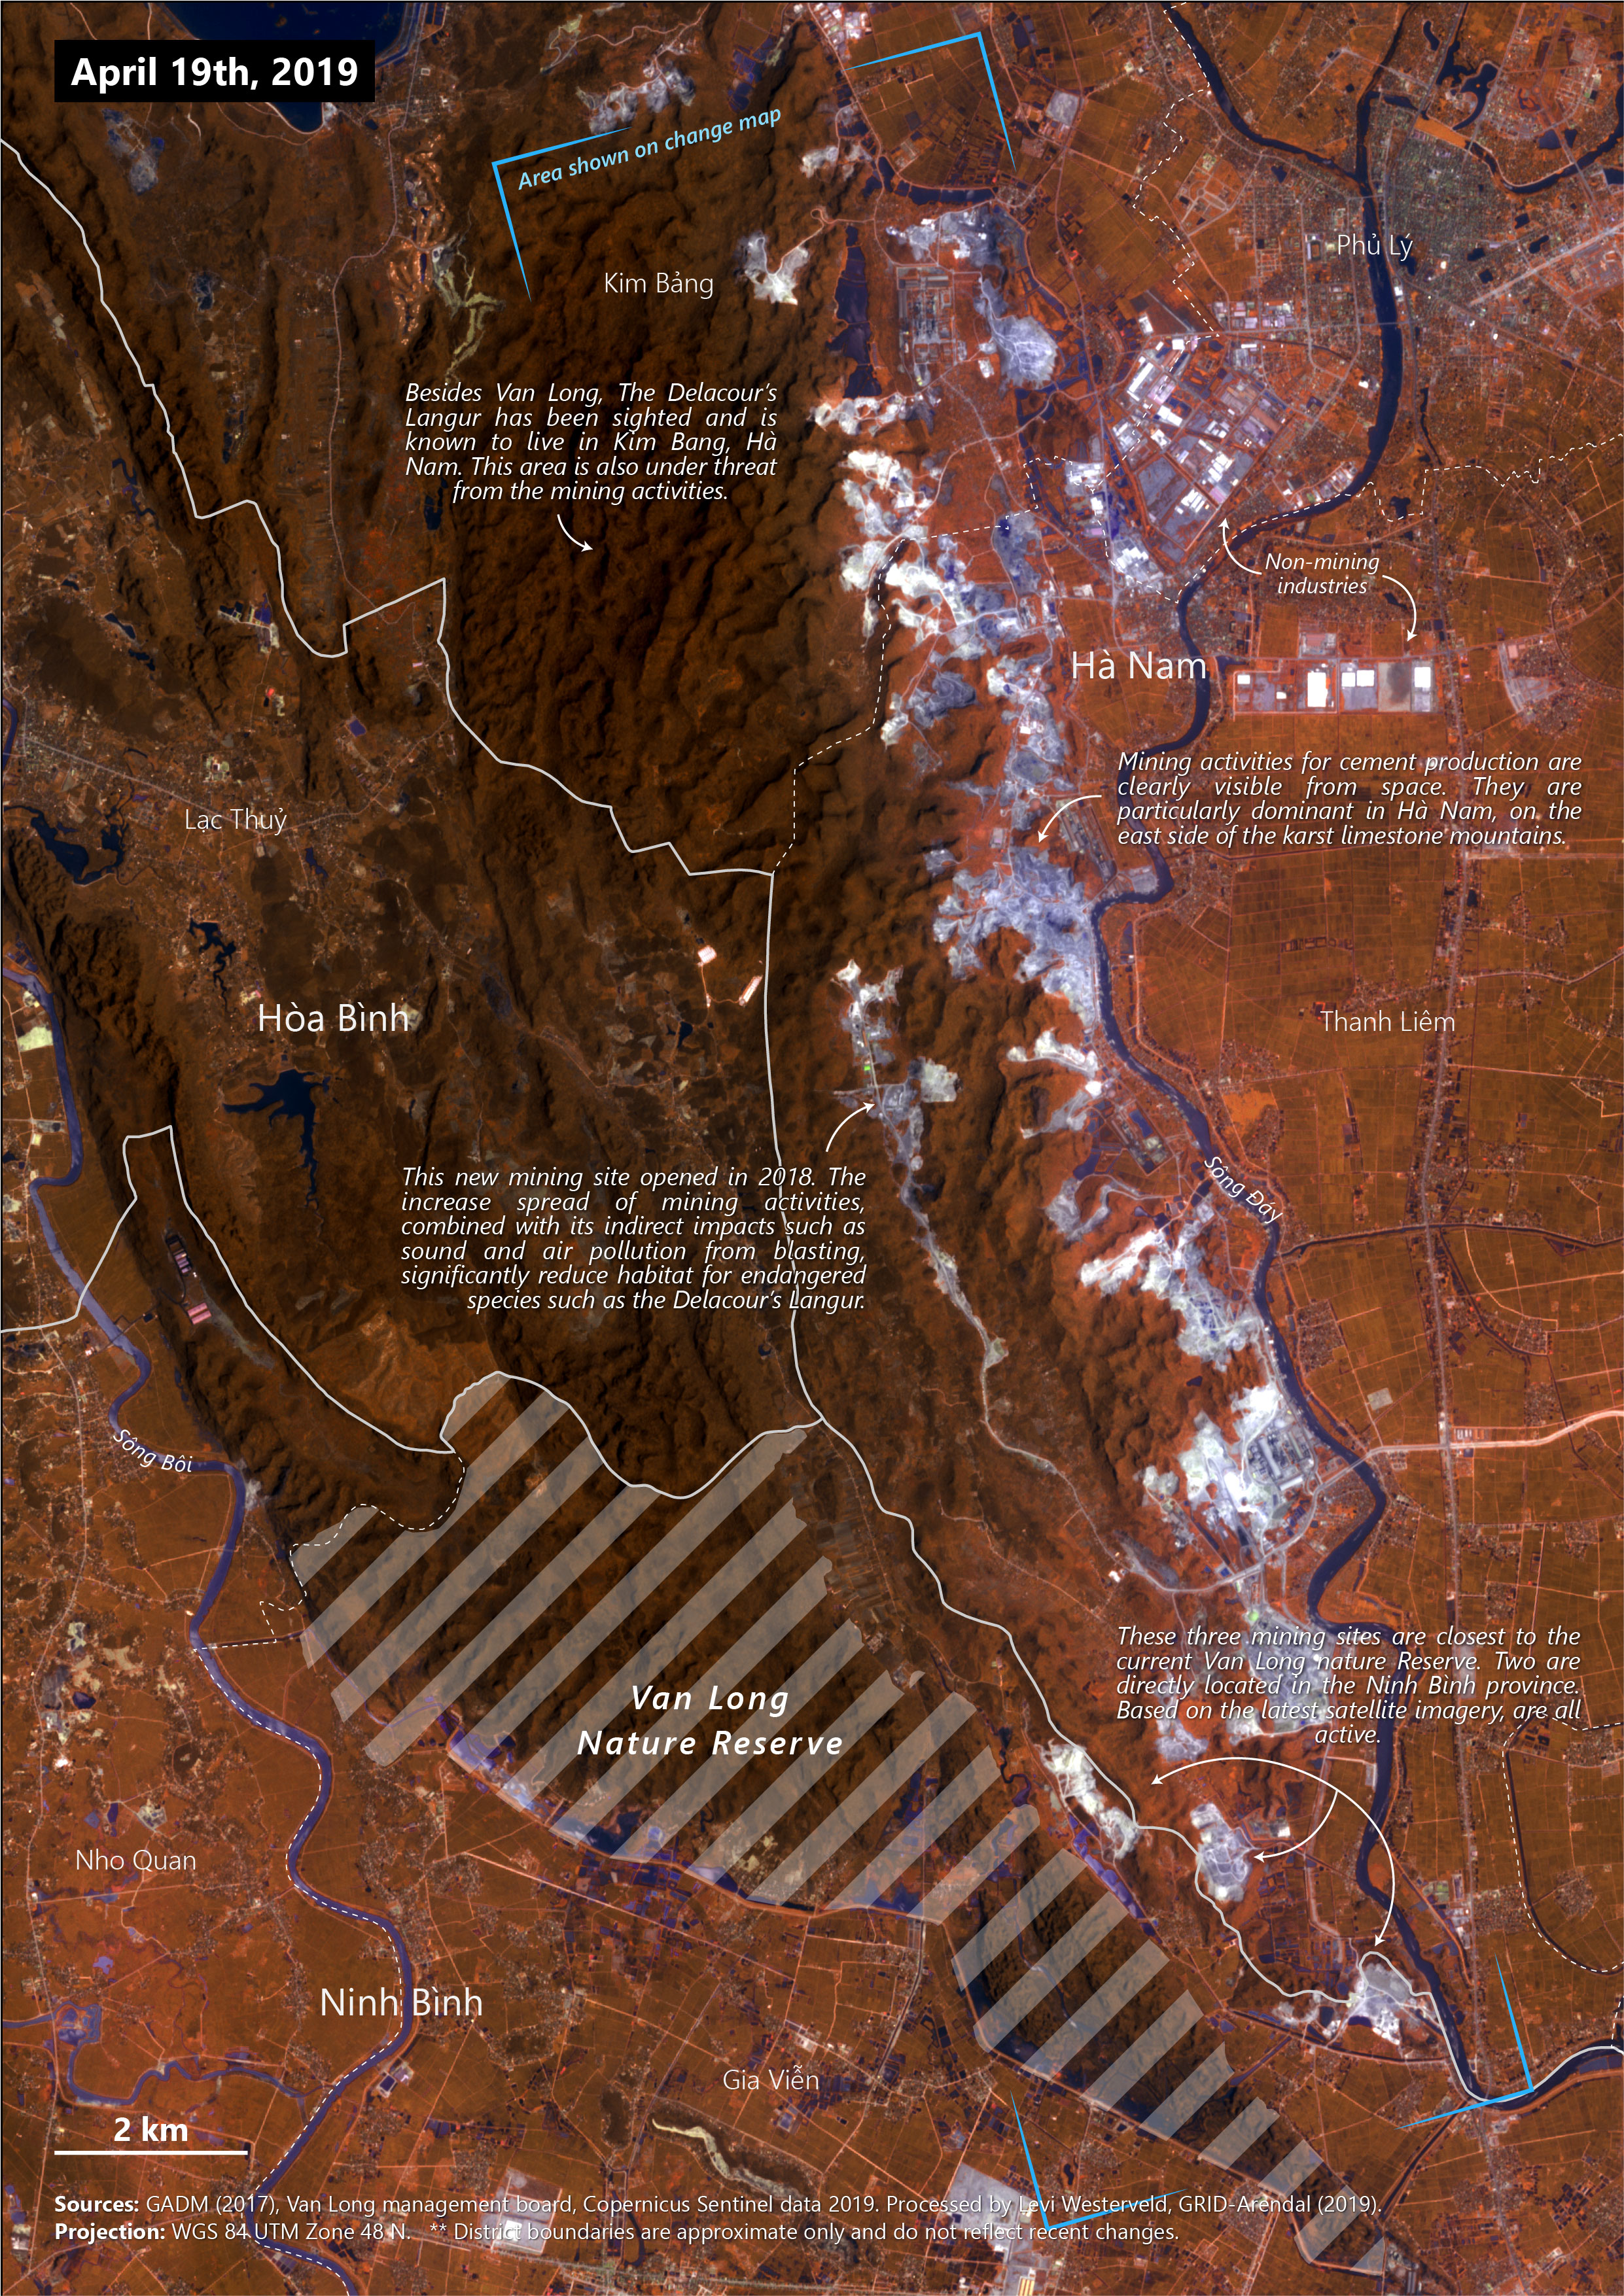 2019 False color image showing mining activities around the Van Long Nature Reserve, Vietnam . Produced for IUCN (2019).